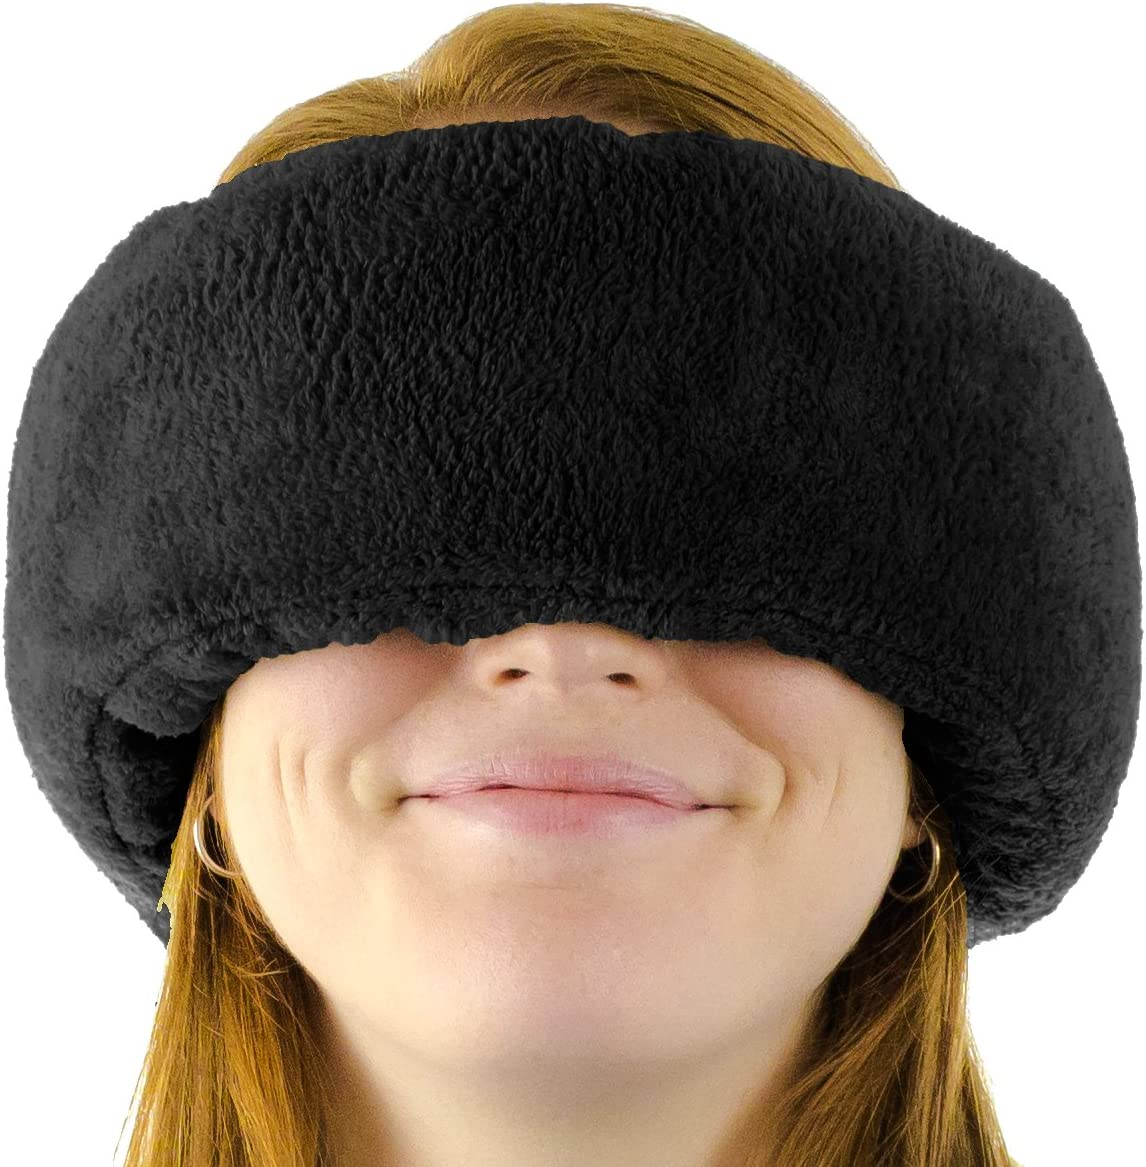 Wrap-a-Nap Travel Pillow, Sleep Mask & Ear Muff